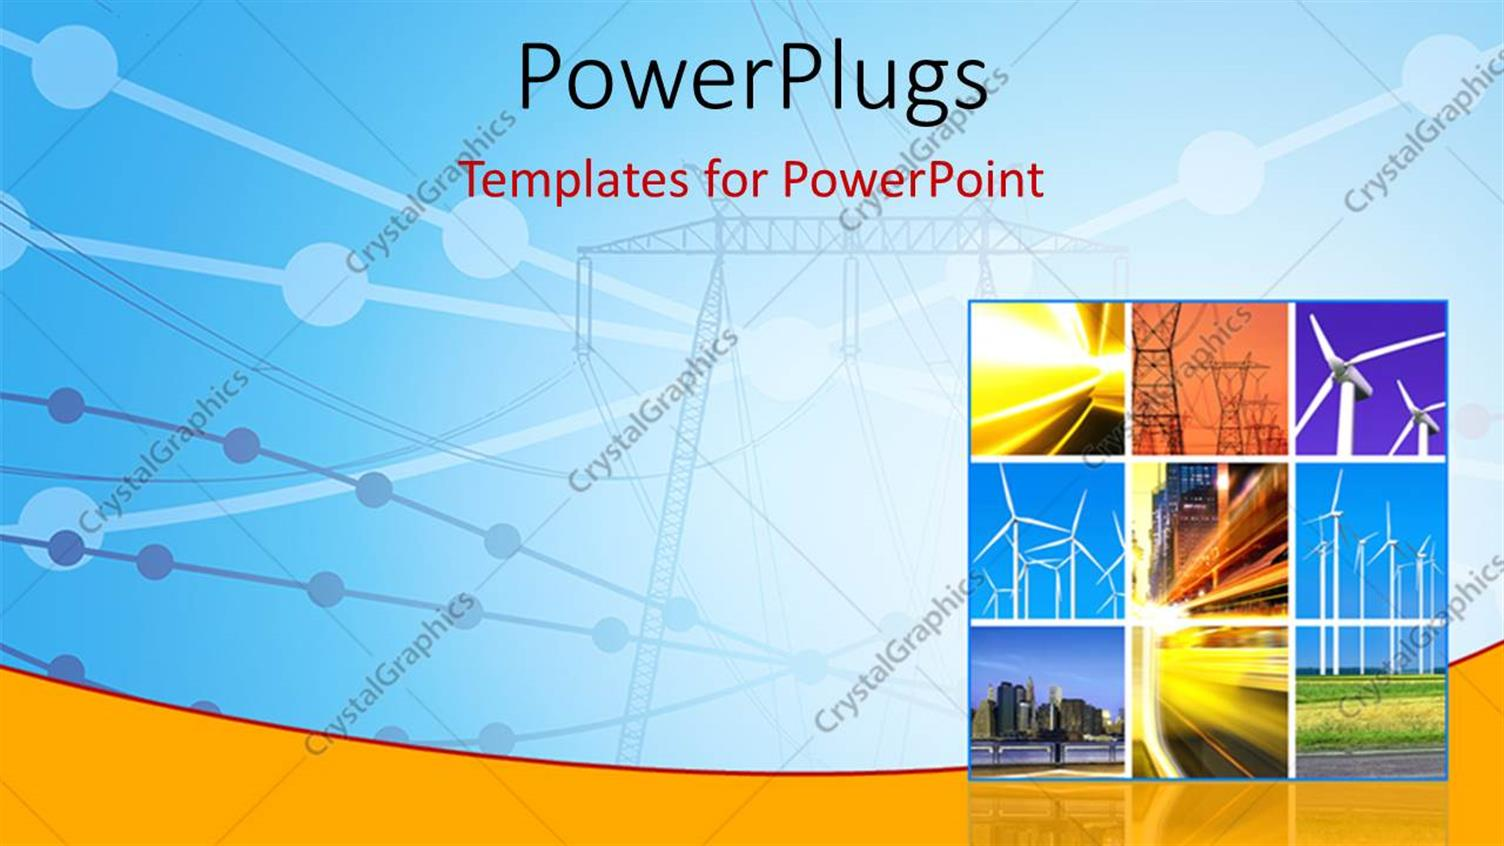 powerpoint template electricity generation and transmission with collage of wind turbines 11032. Black Bedroom Furniture Sets. Home Design Ideas